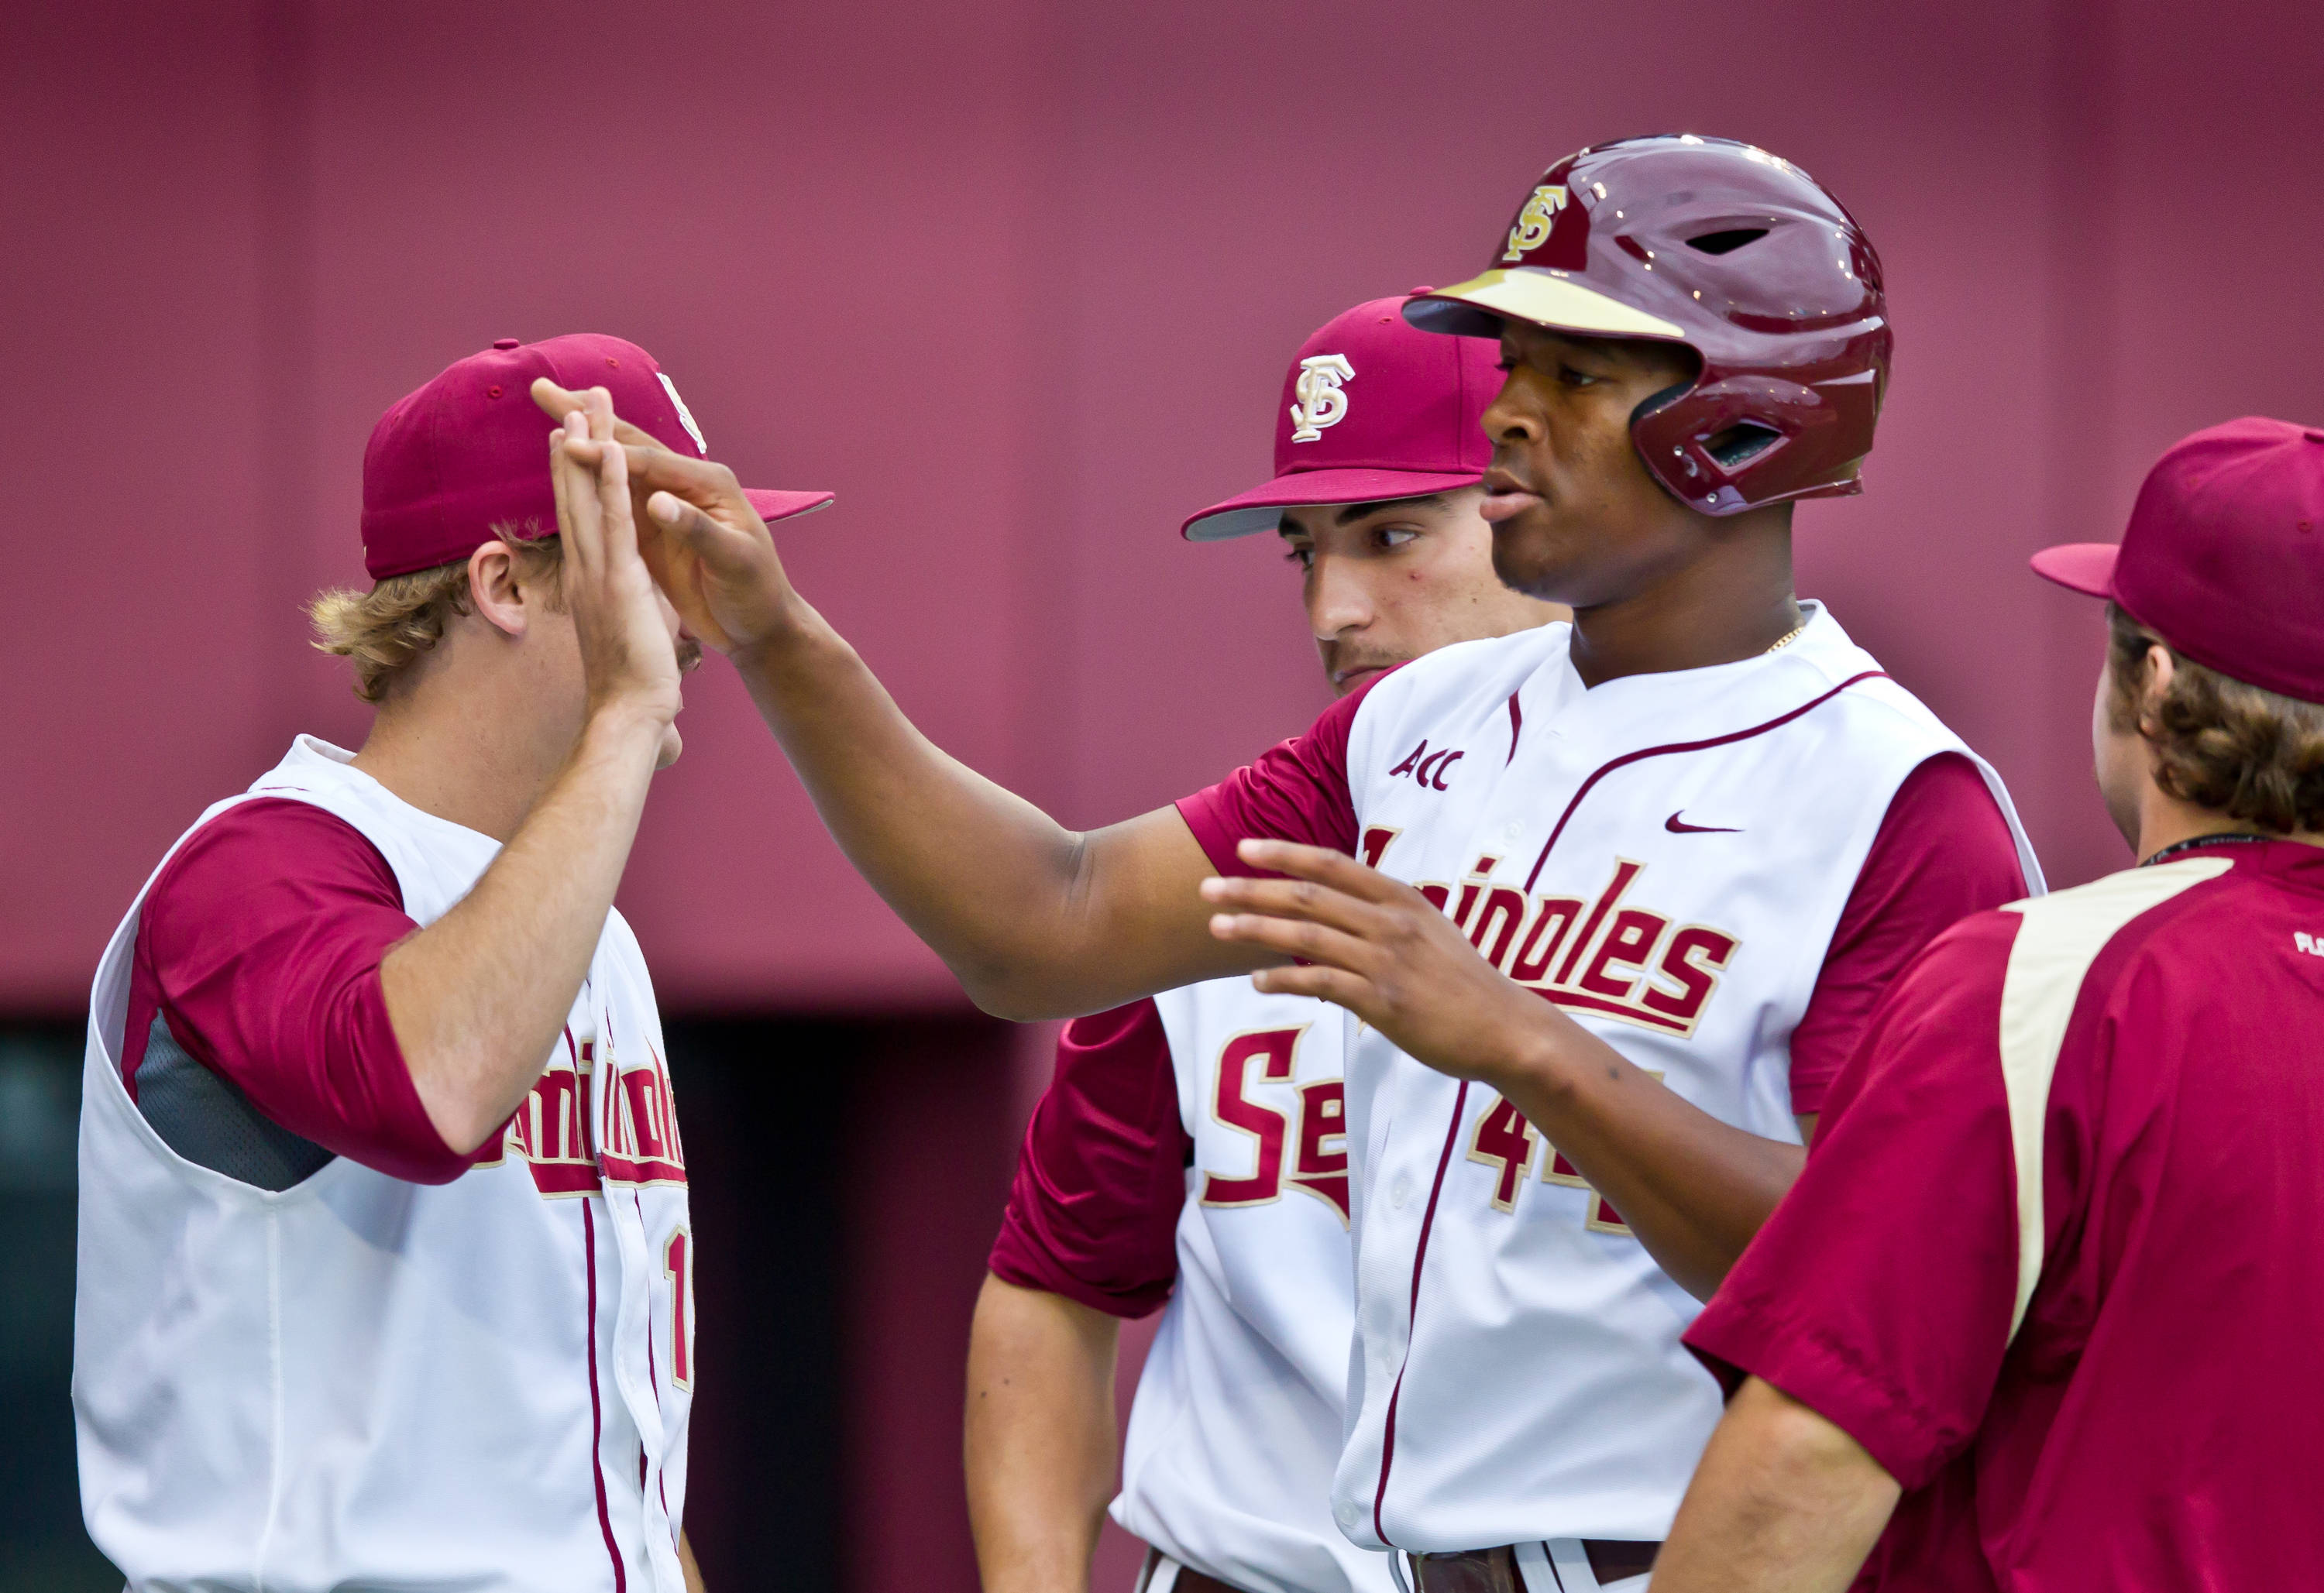 Jameis Winston is greeted at home after scoring the first run of the game.